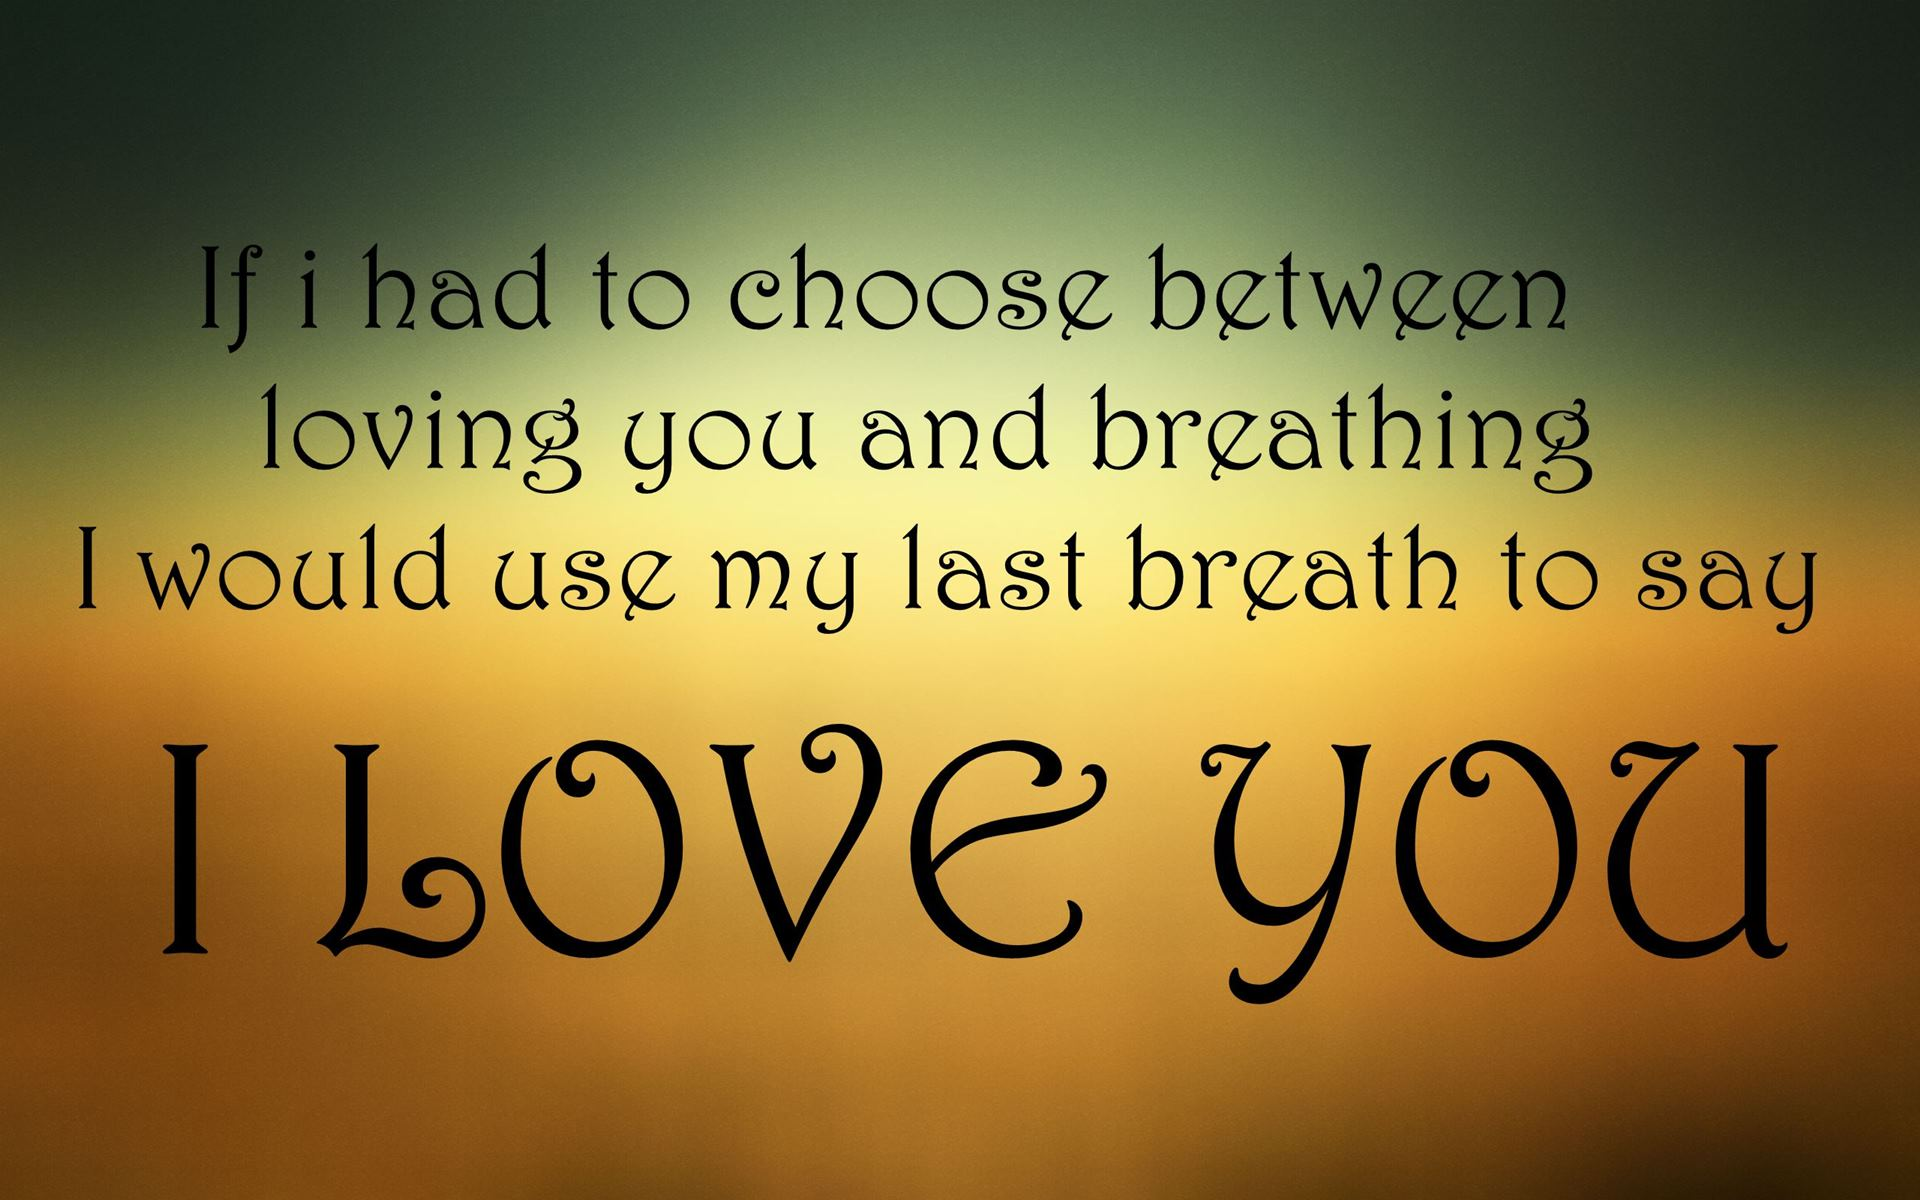 Love couple Hd Wallpaper With Quotes : Quotes About Love Wallpapers, Pictures, Images